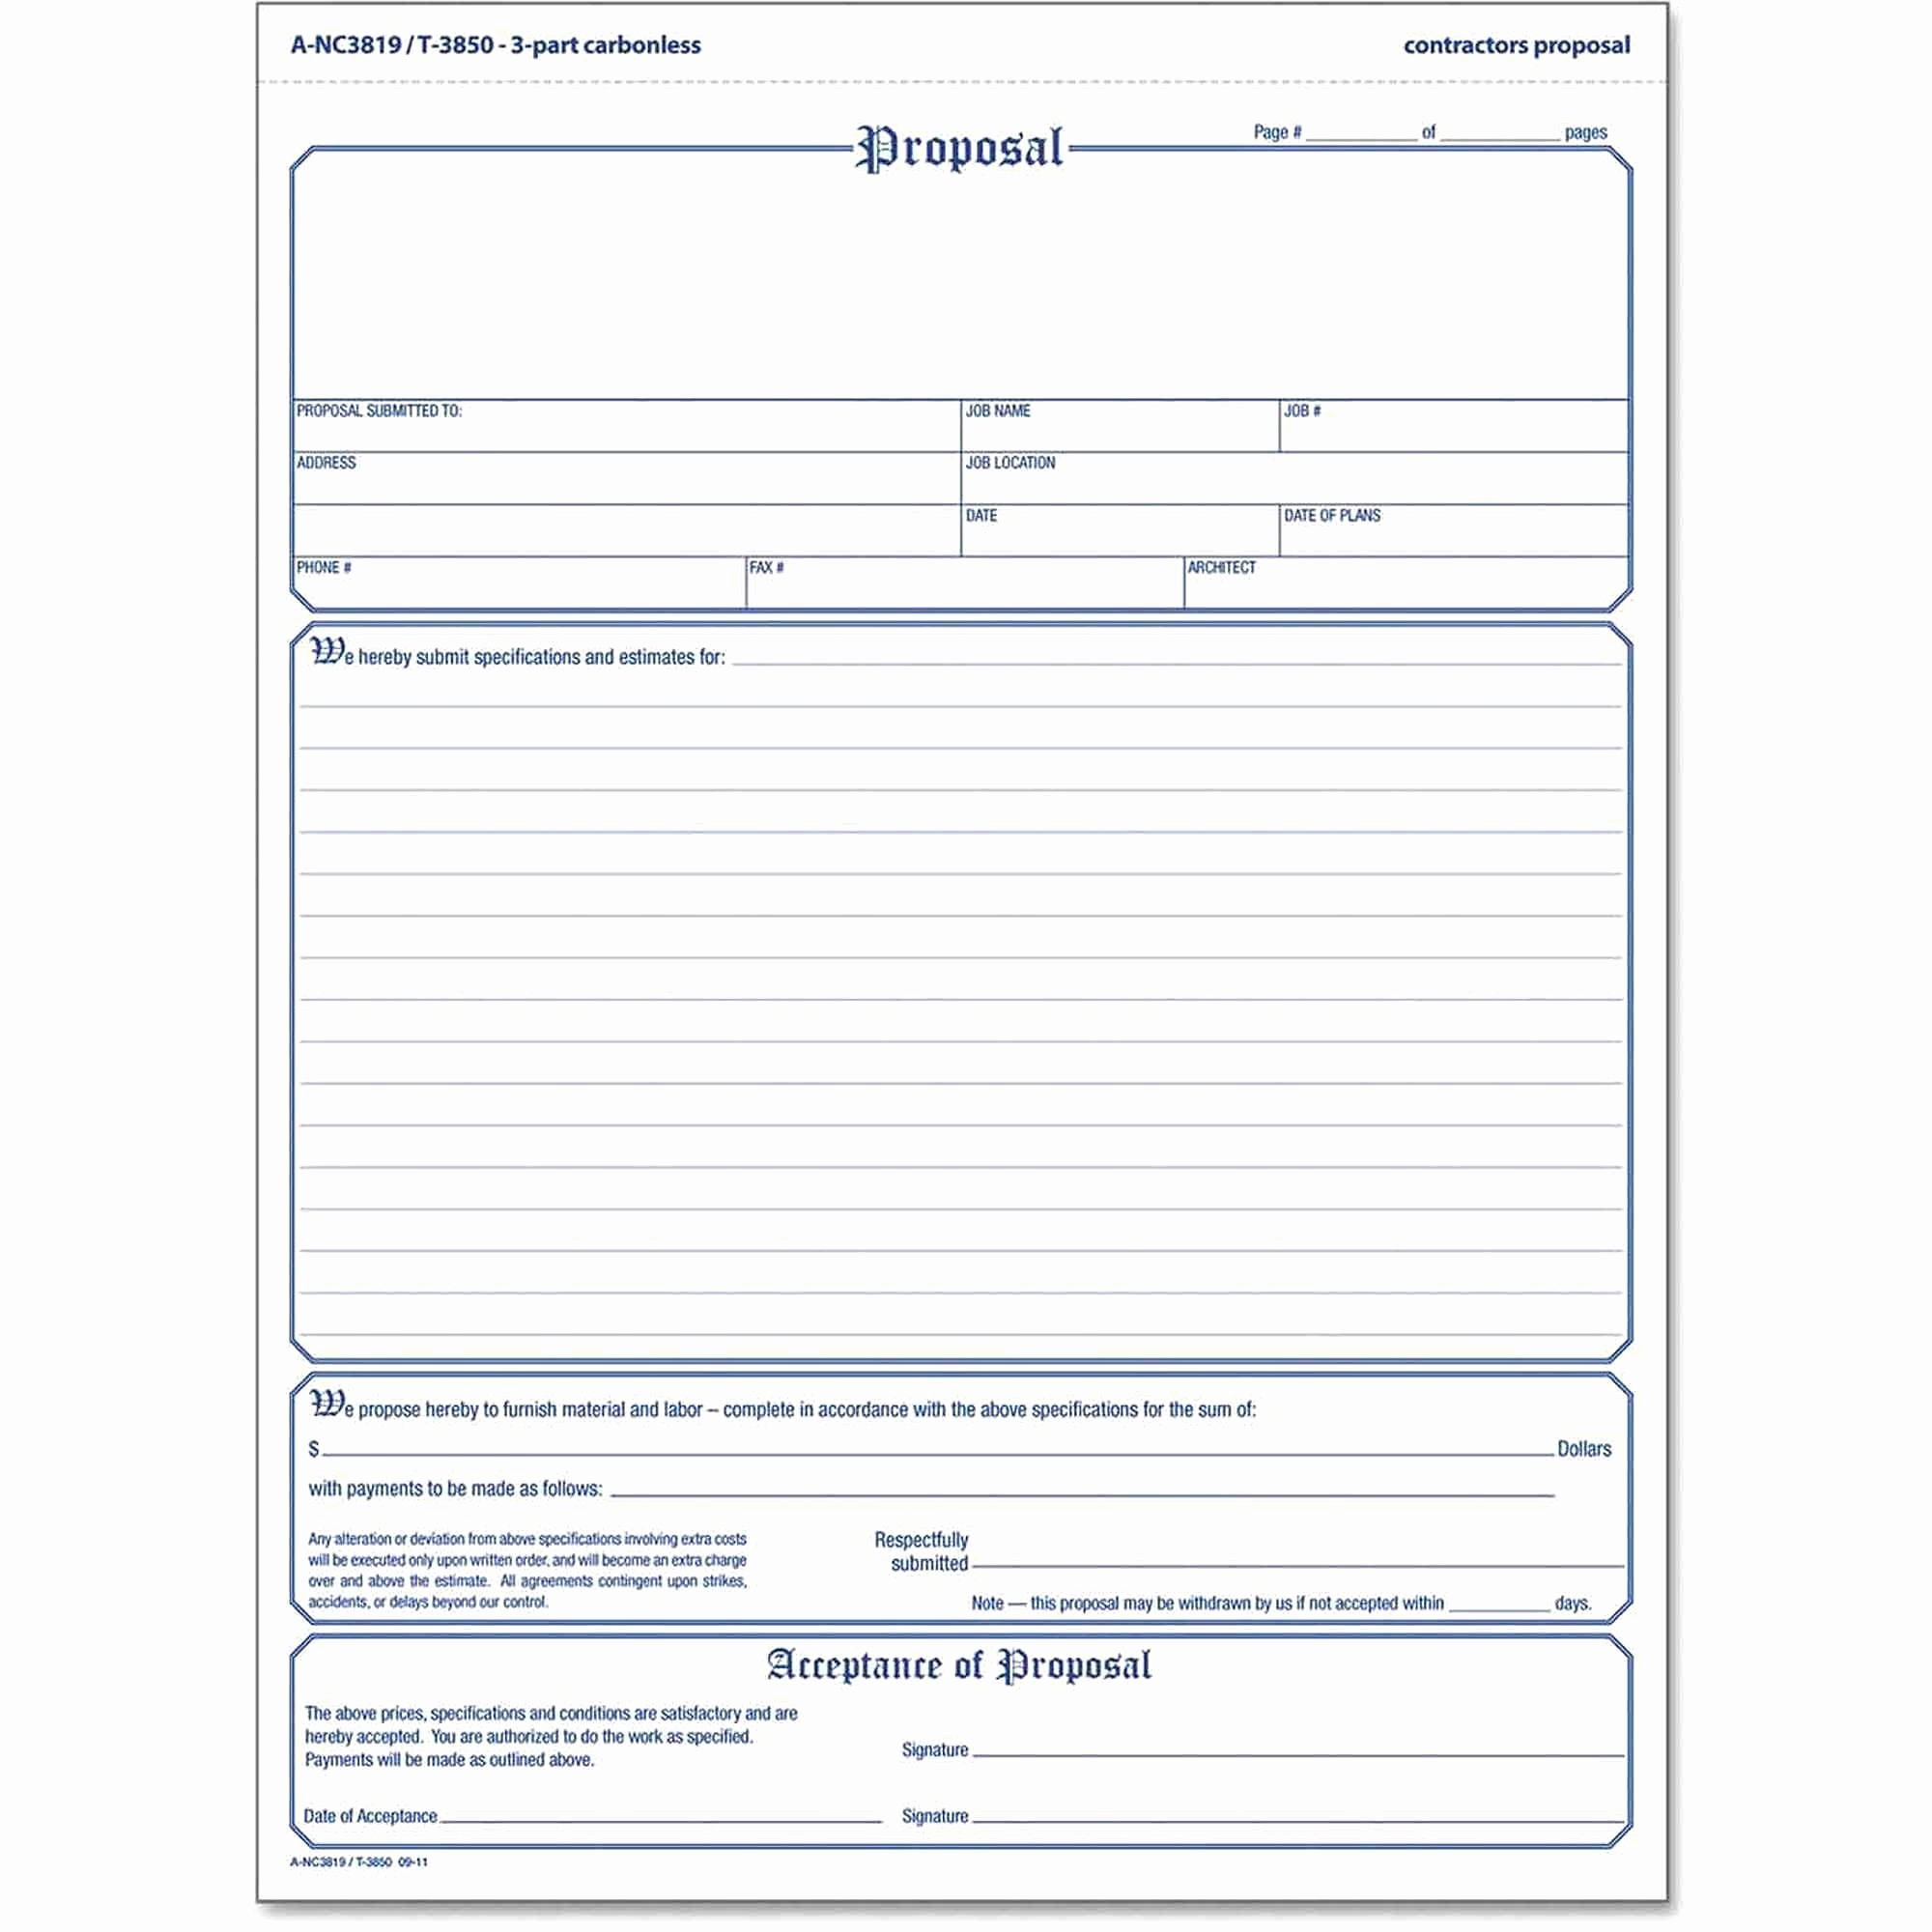 Free Printable Contractor Proposal forms New Free Print Contractor Proposal forms Construction Proposal